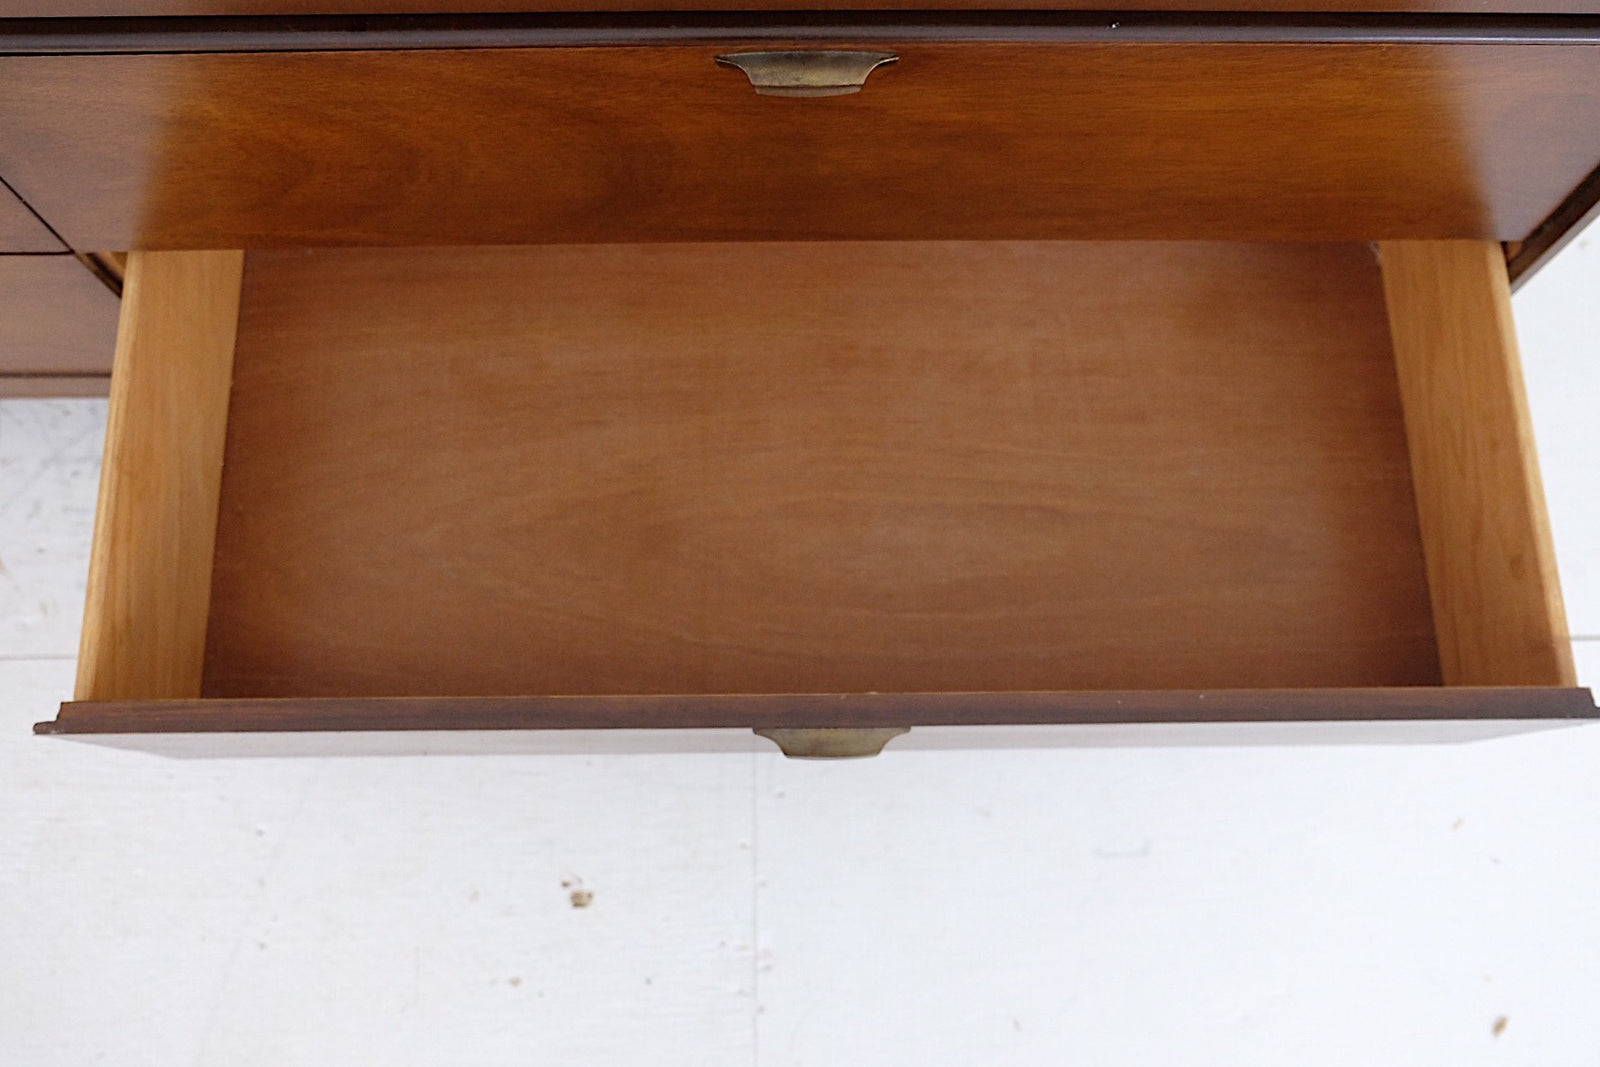 Four Leaf Clover Inlay Mid Century Long Lowboy Dresser Six Drawers